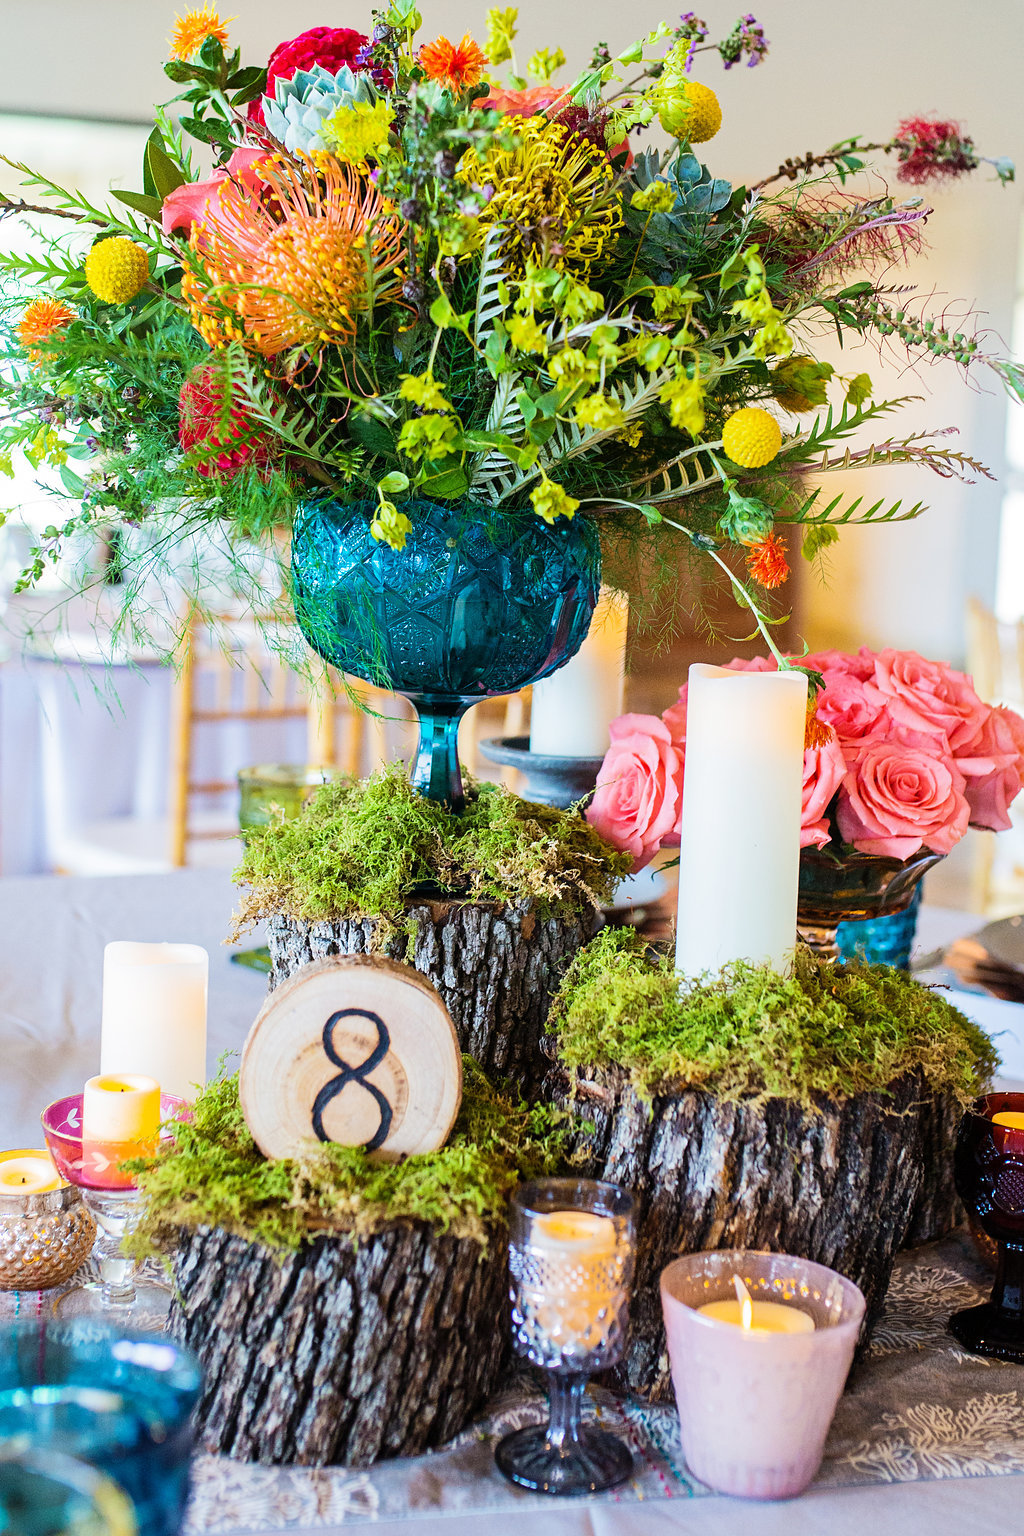 Fun and Colorful Wedding Inspiration with Paper Flowers - photo by Sarah Kathryn Portrait Design http://ruffledblog.com/fun-and-colorful-wedding-inspiration-with-paper-flowers